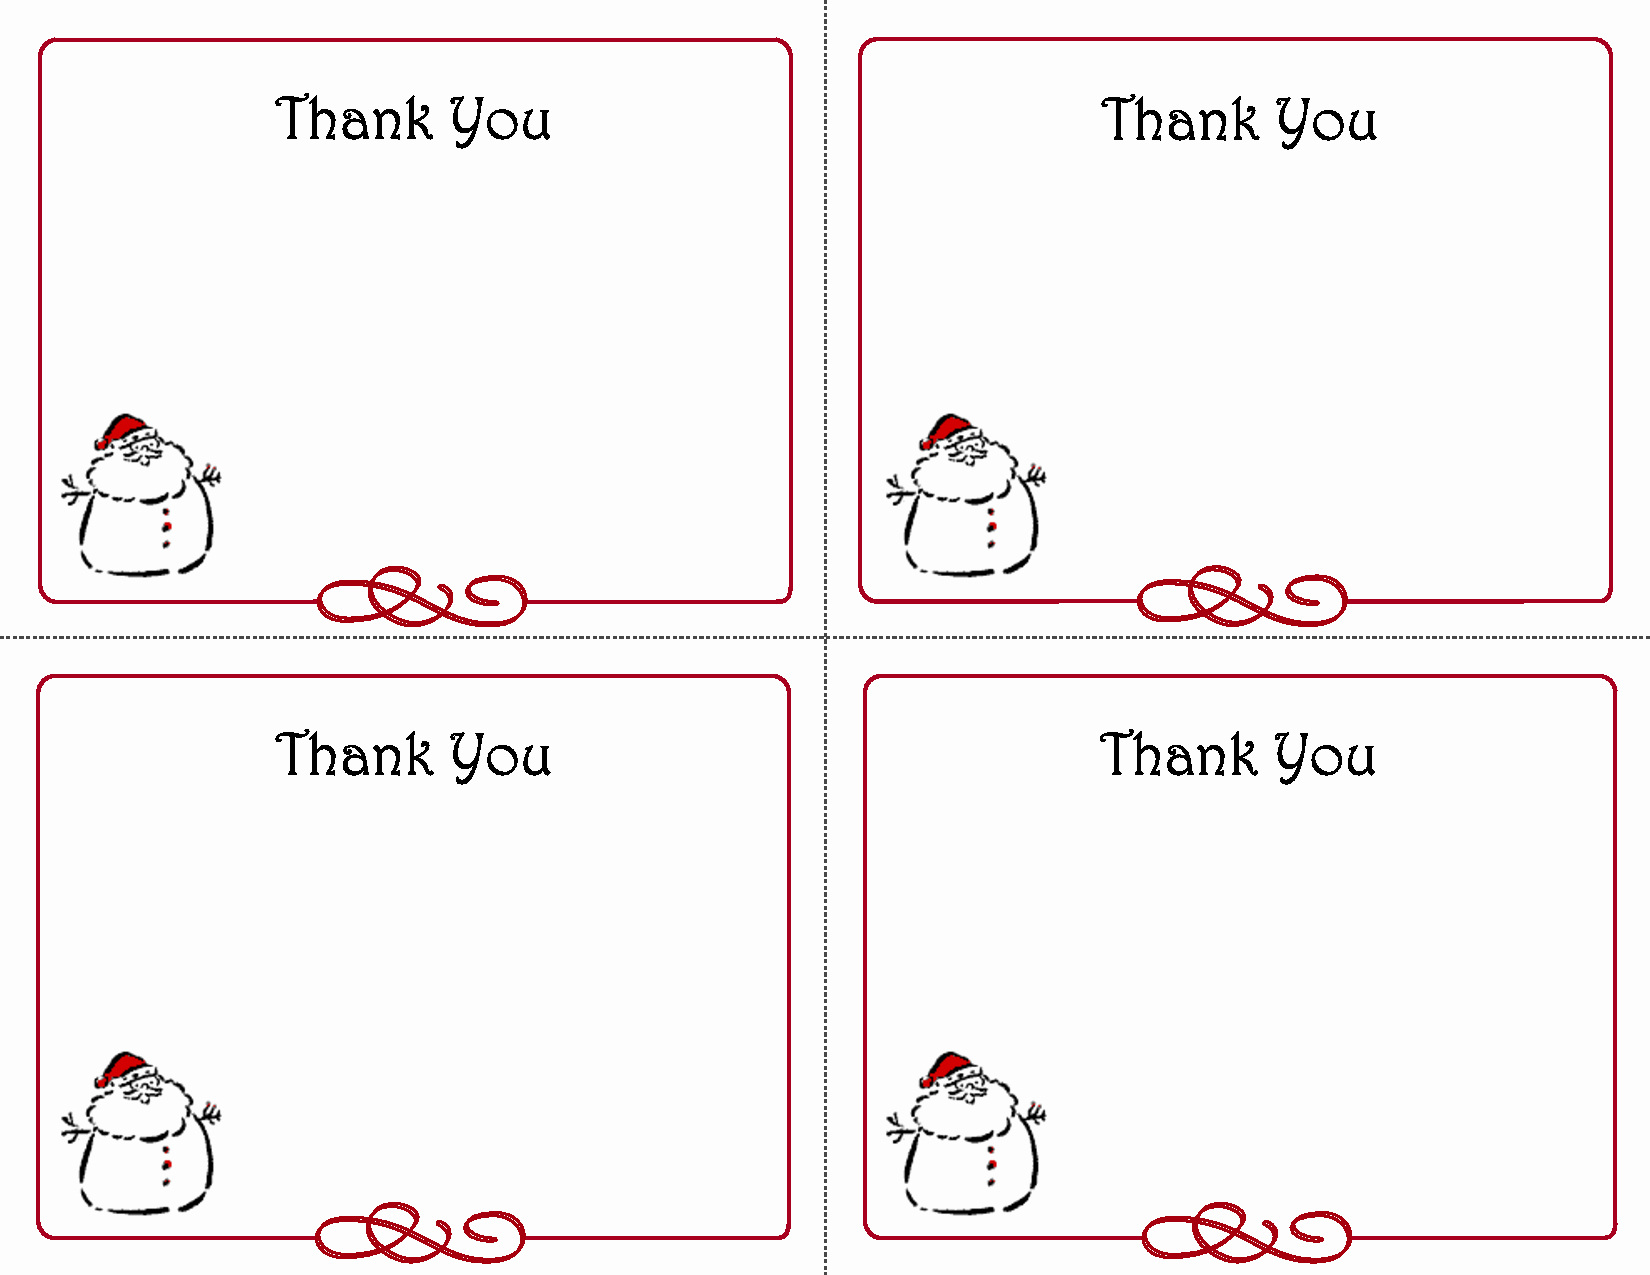 Thank You Cards Template Awesome Printable Christmas Thank You Card Templates